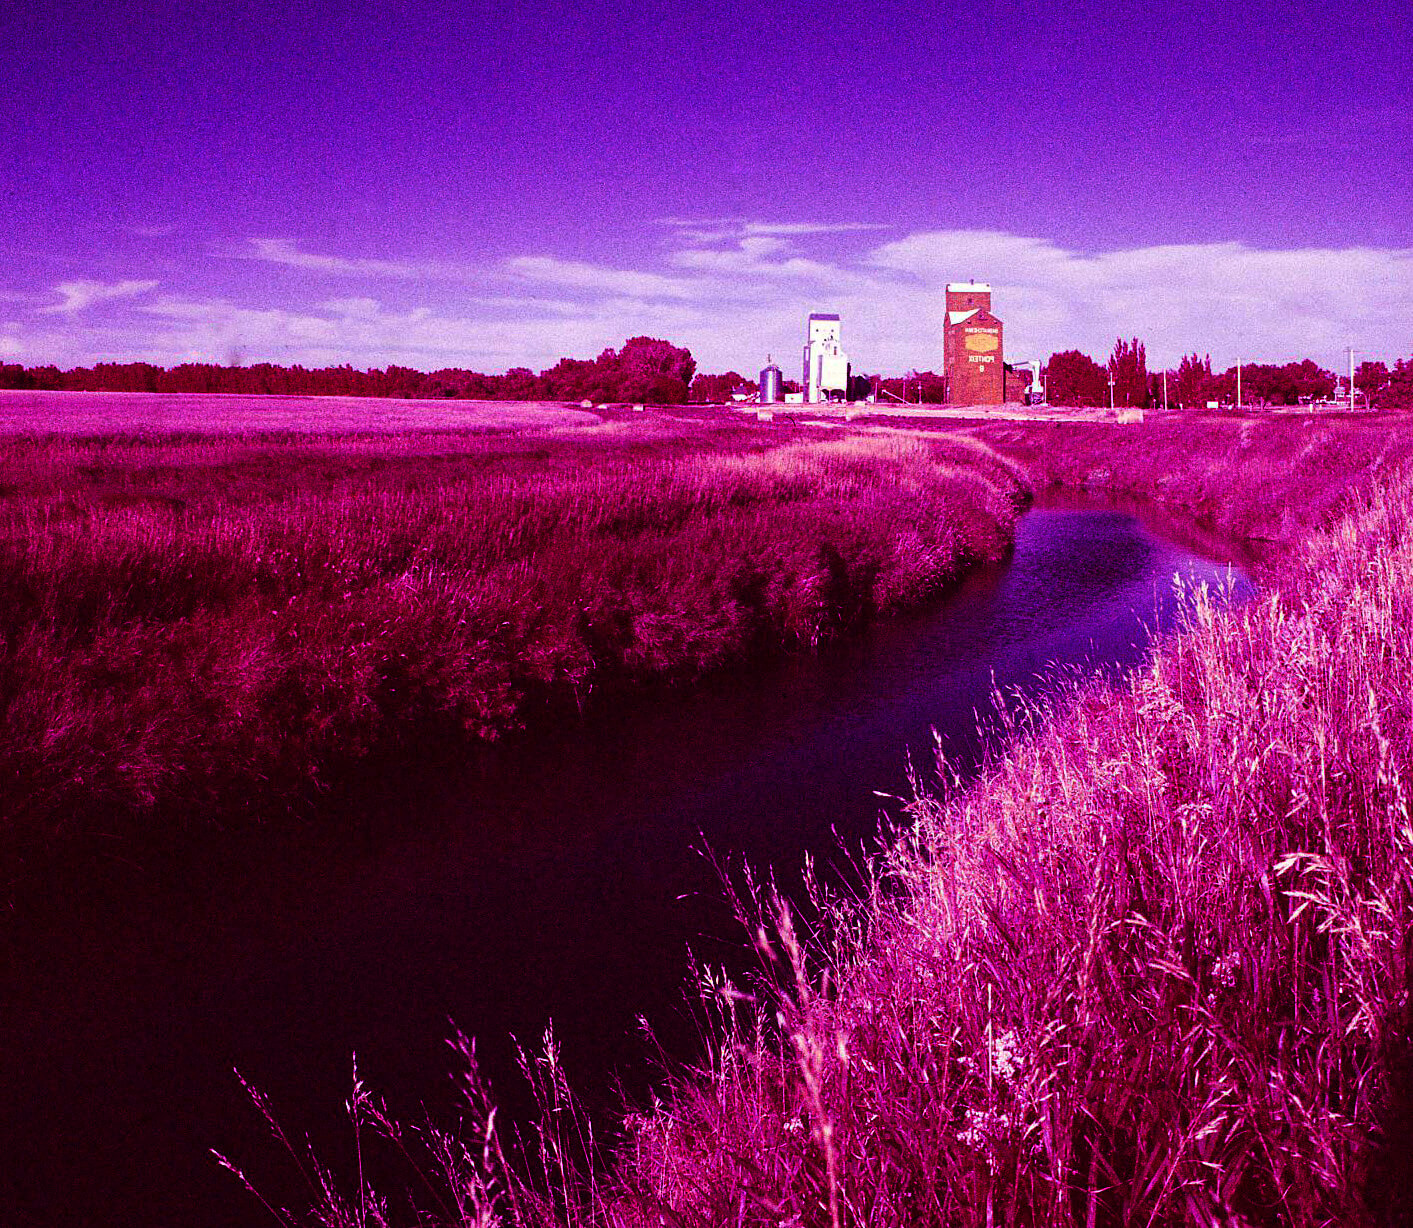 5 Frames... Of the Saskatchewan prairies on Kodak AEROCHROME III Infrared Film 1443 (120 Format / EI 400 / Mamiya C330 Professional S) - by Bob St-Cyr